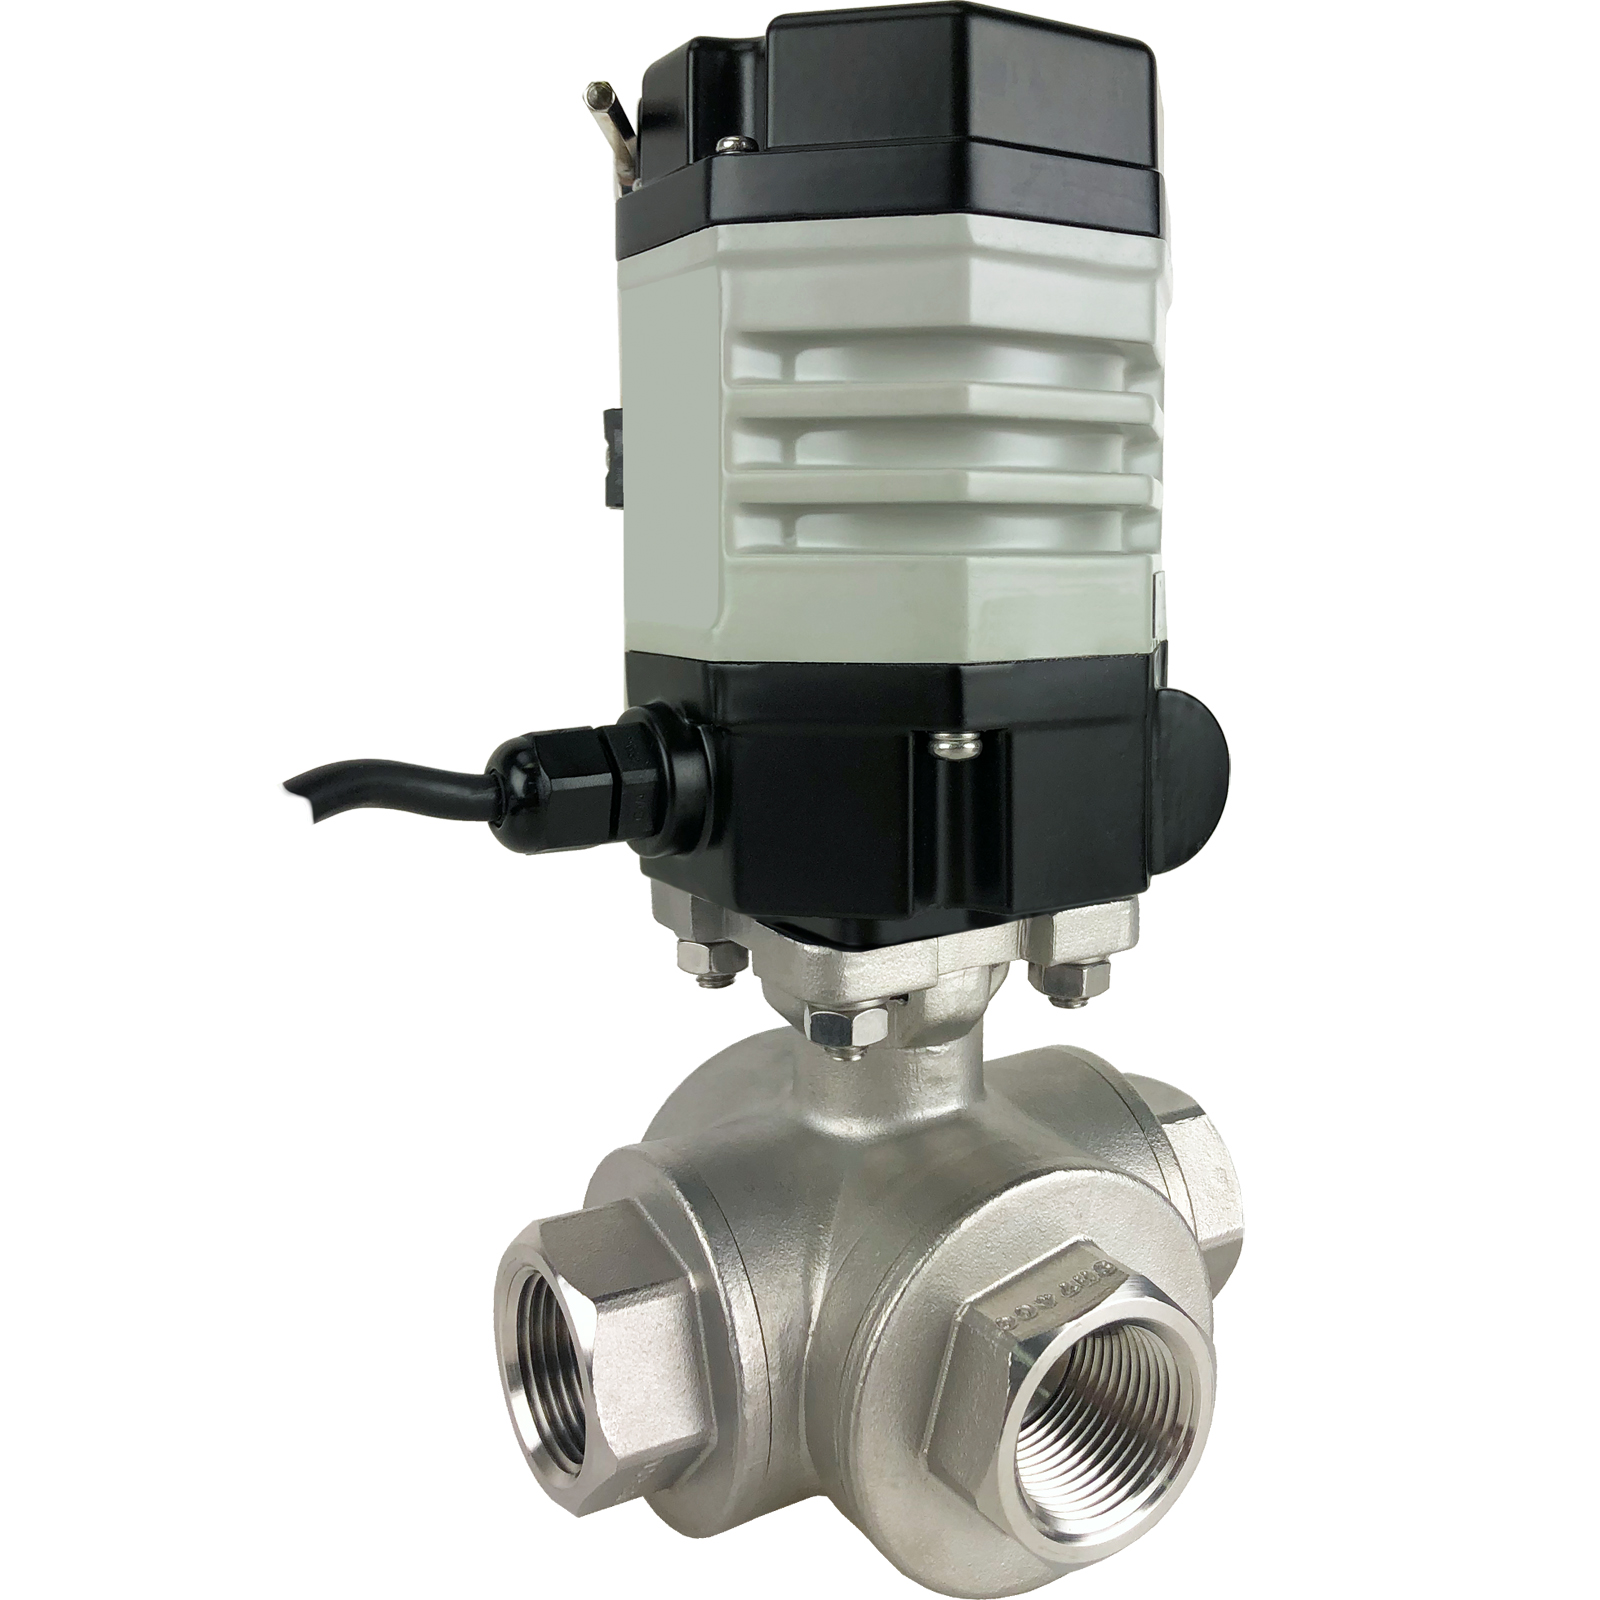 "3/4"" Compact Electric 3-Way Stainless L-Diverter Valve 24 VAC"